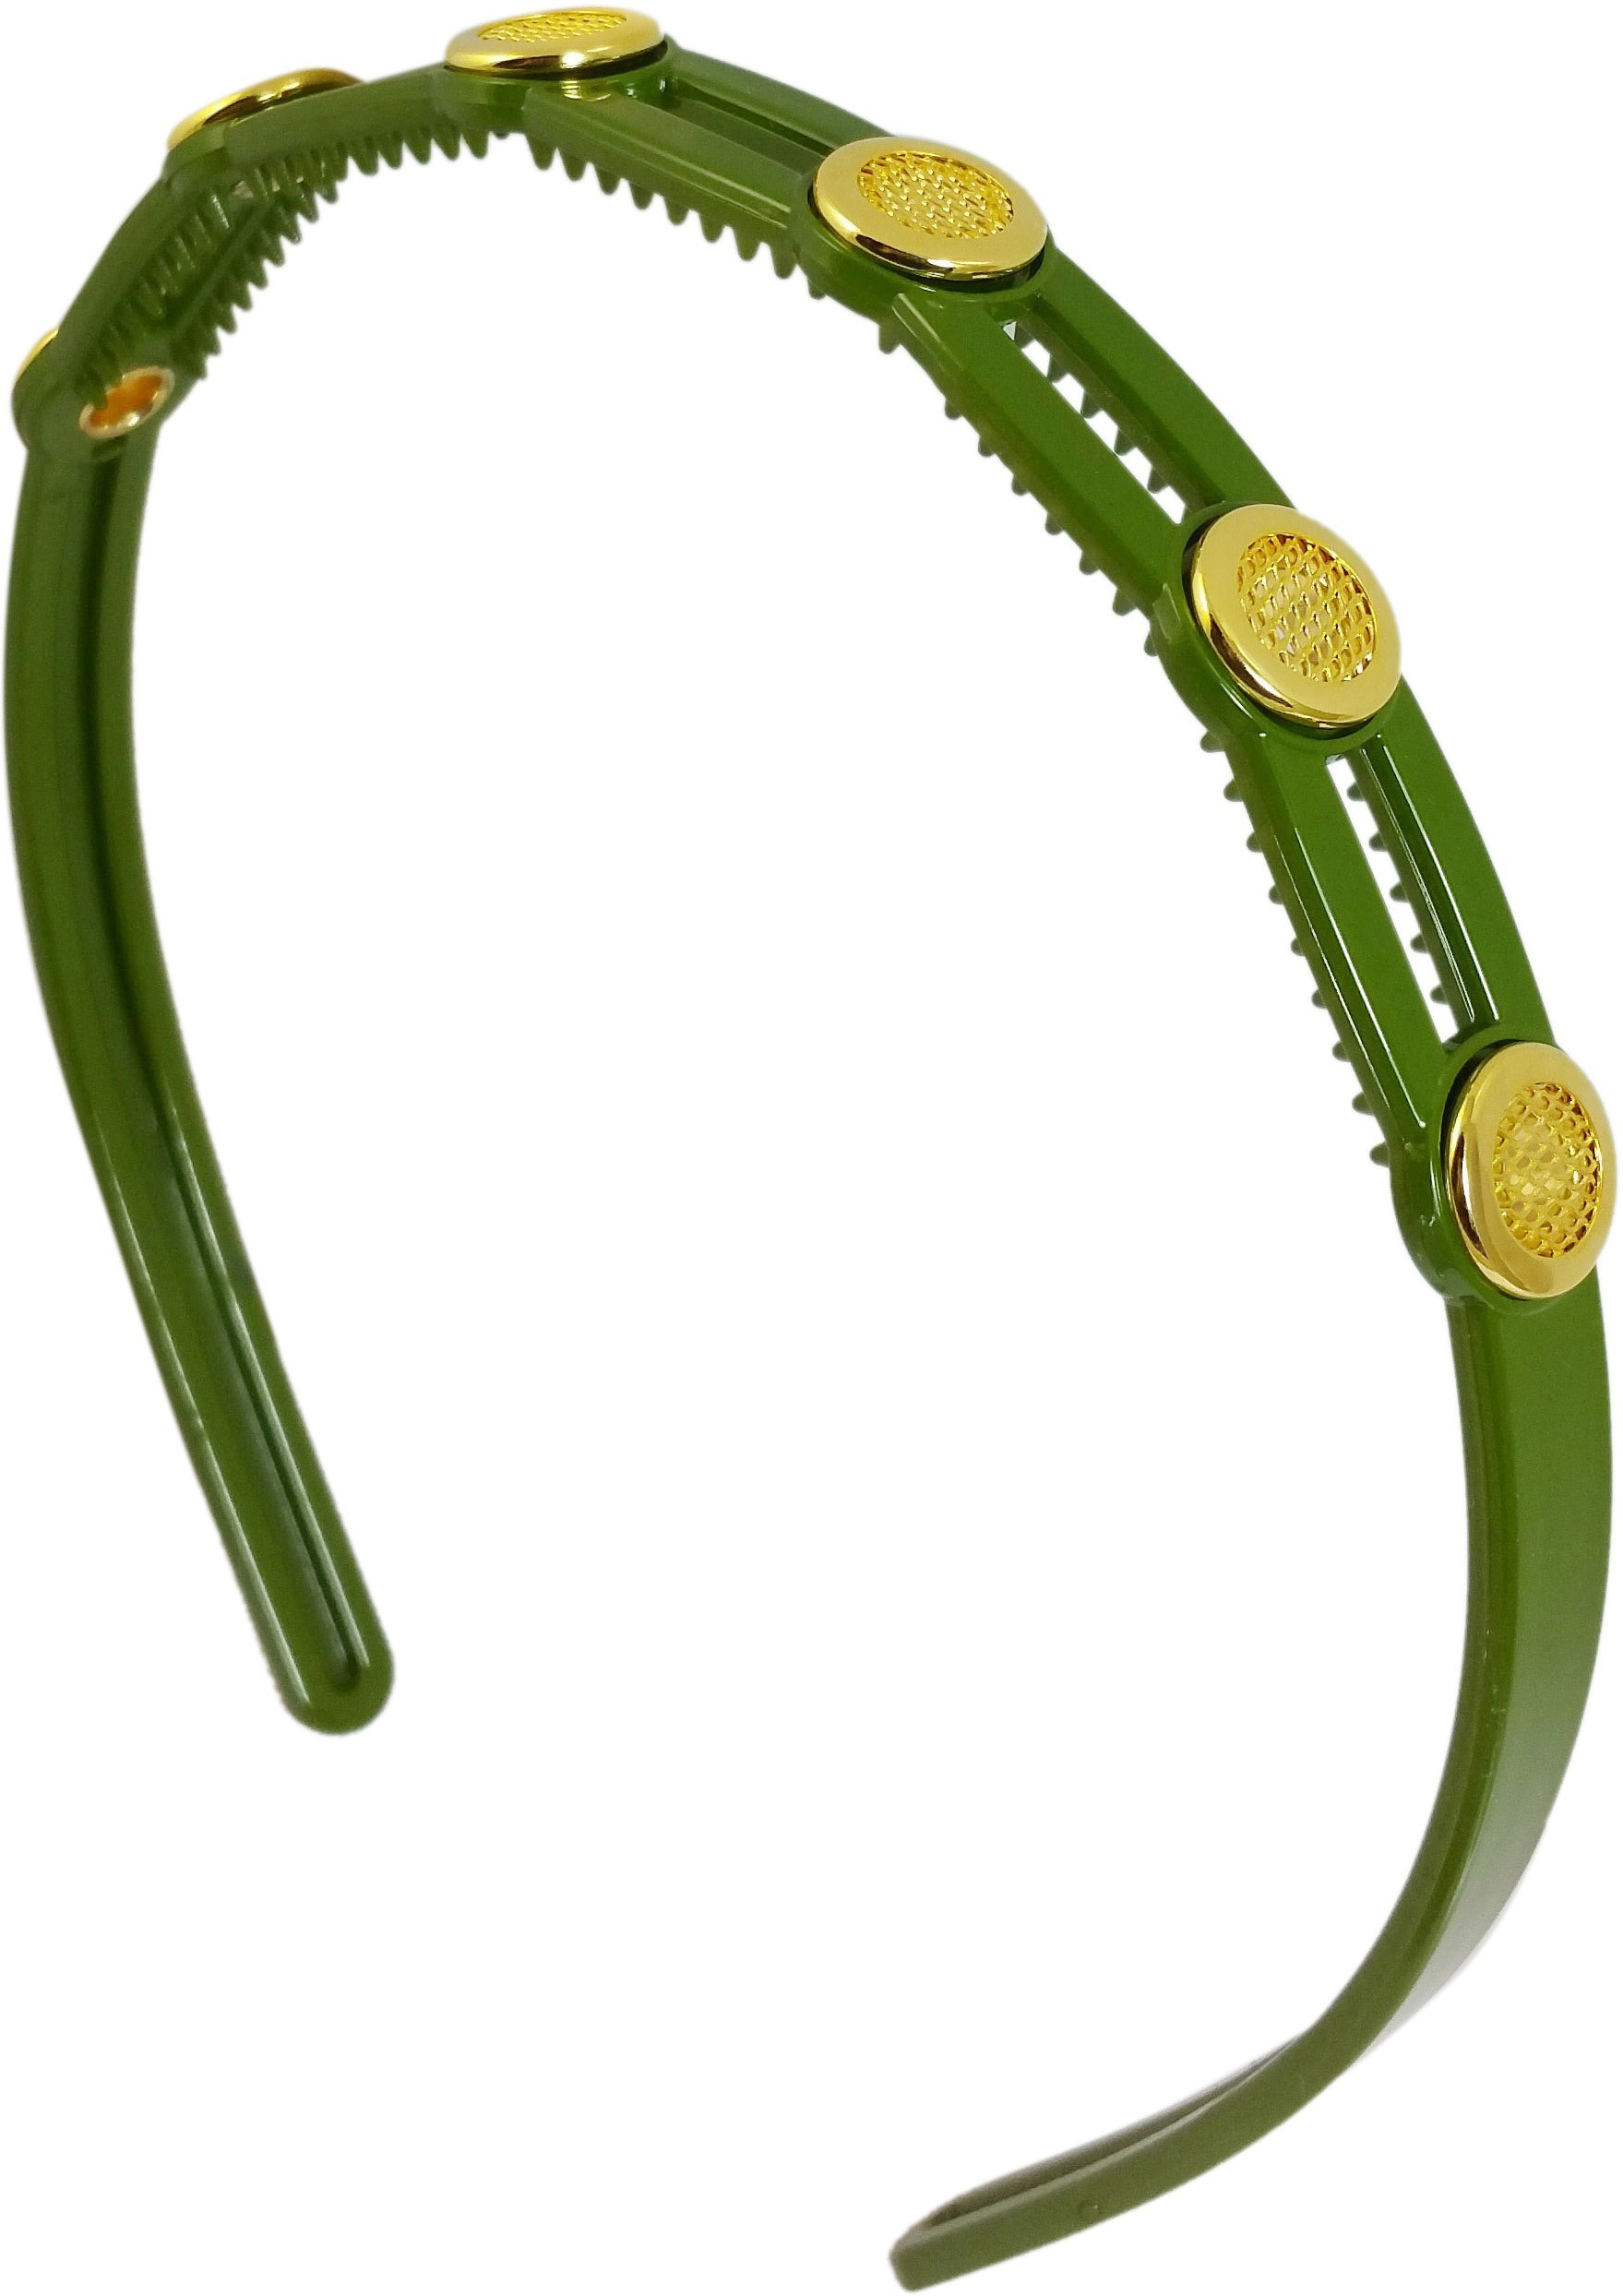 Ammvi Creations Badges Tiny Teeth Parrot for Women Hair Band(Green)